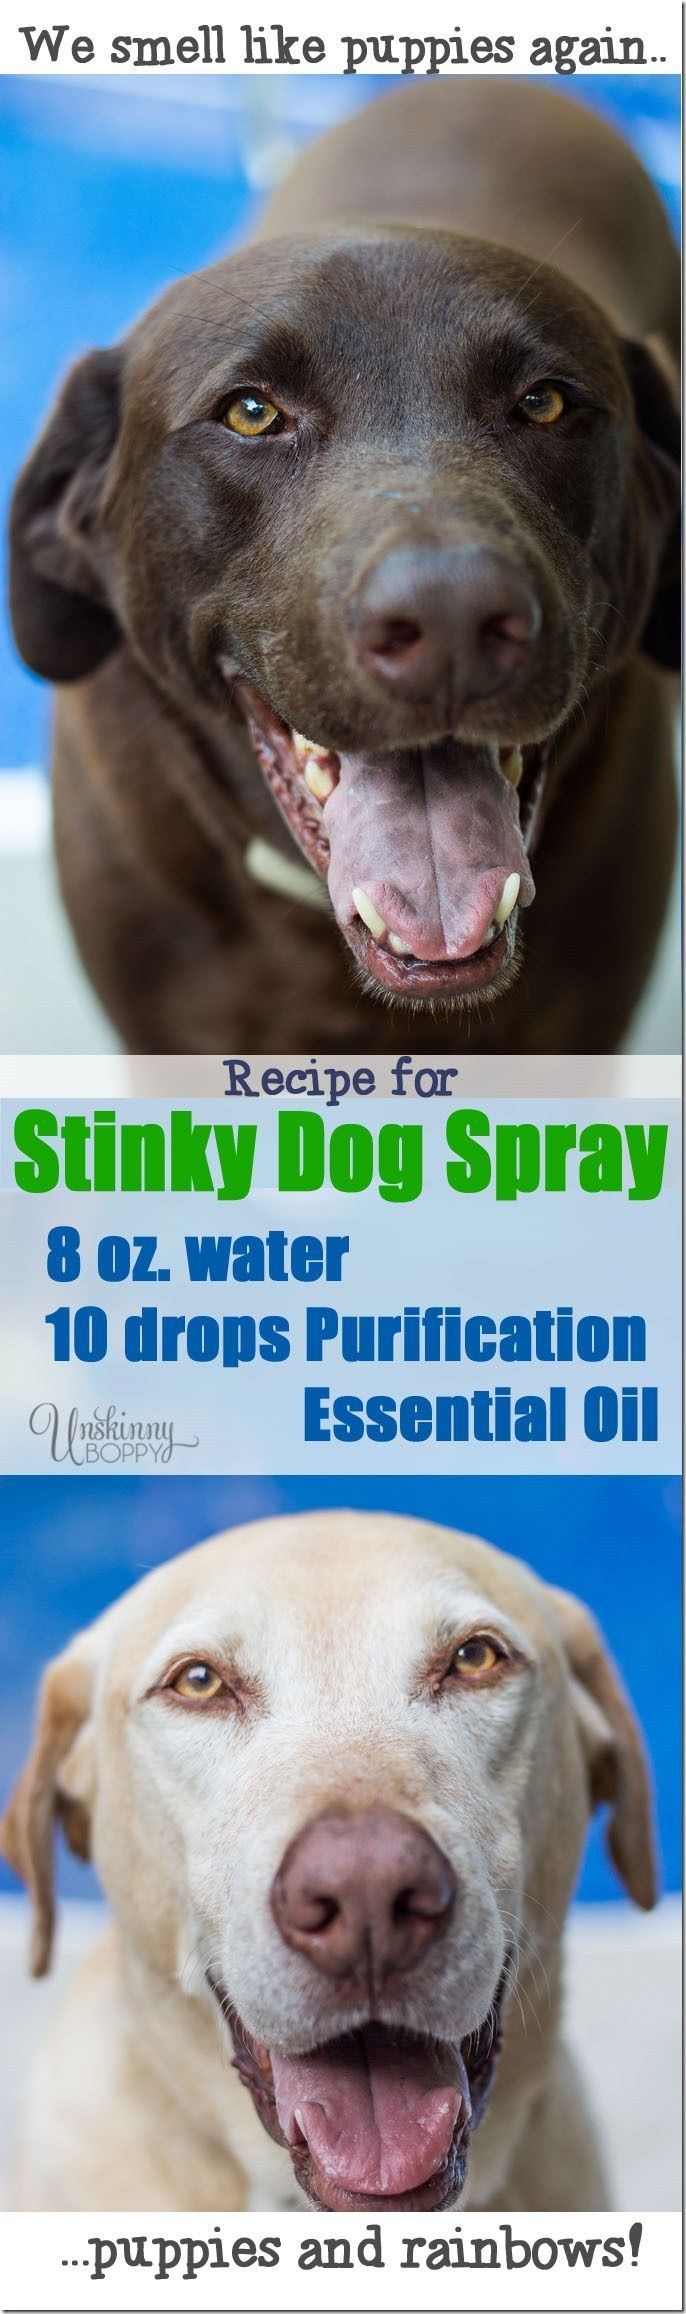 Recipe for Stinky Dog Spray - mix water   with purification essential oils sold by Young Living   distributors